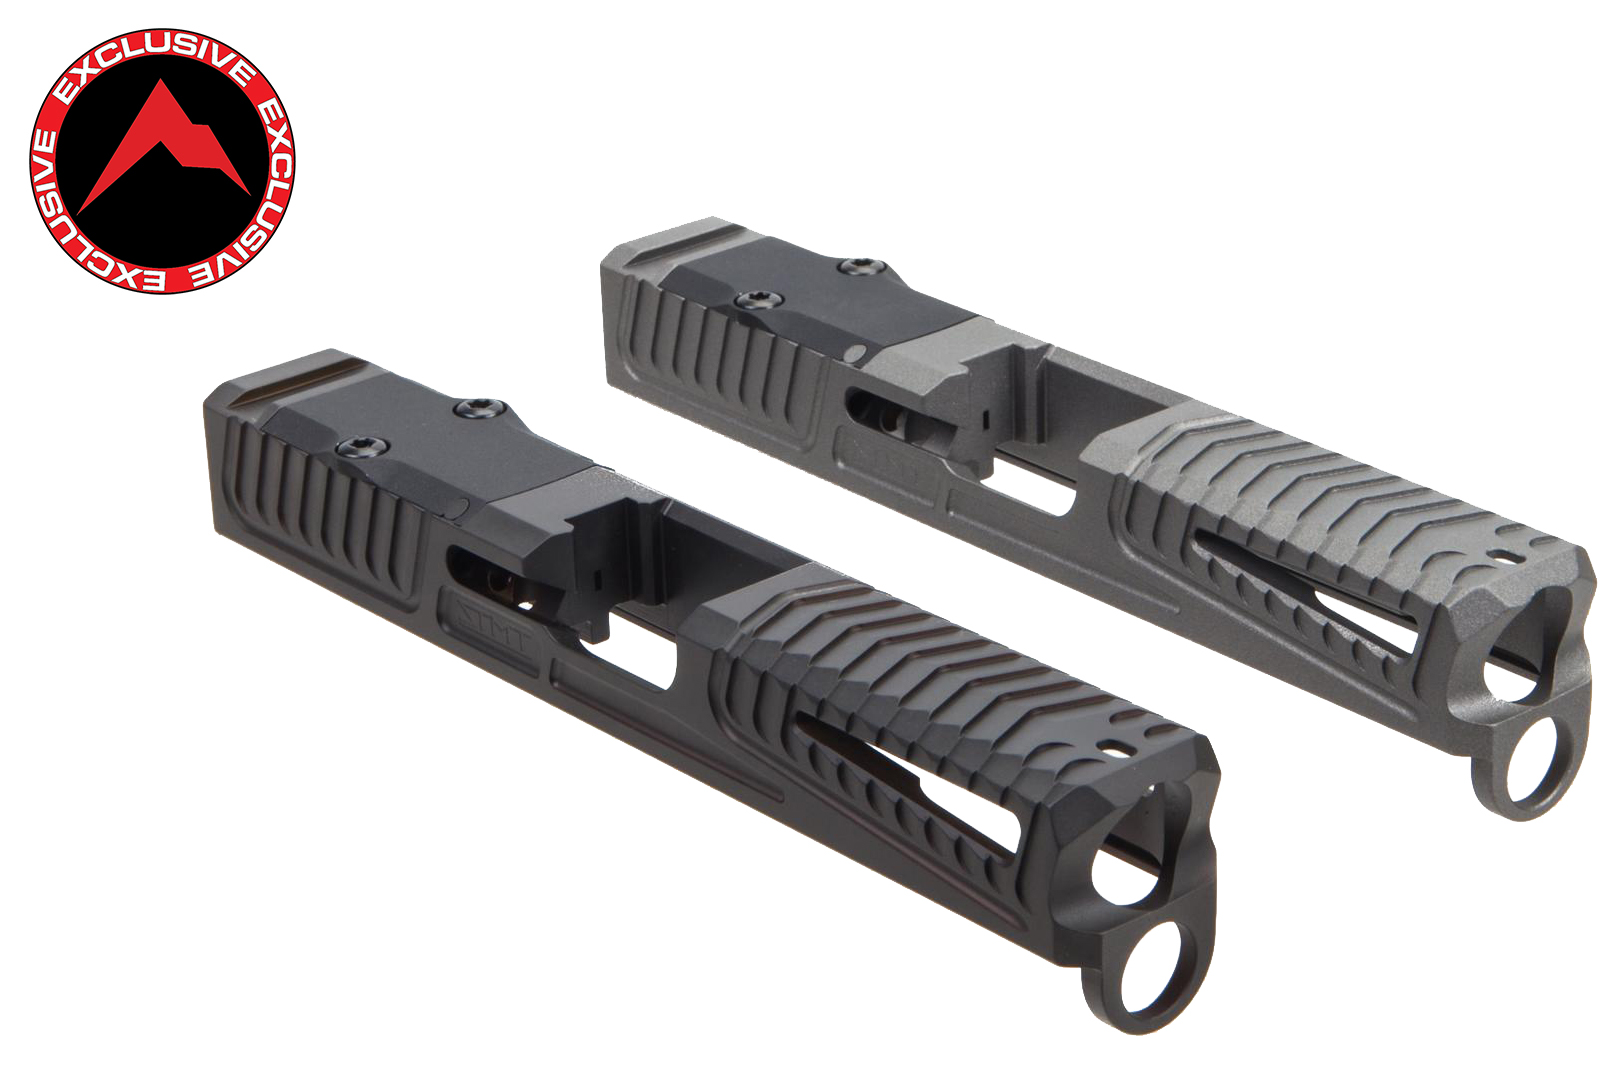 Statement Defense Glock 19 Gen 4 Overbite SW Stripped Slide - Trijicon RMR Cut (Rainier Arms Exclusive)